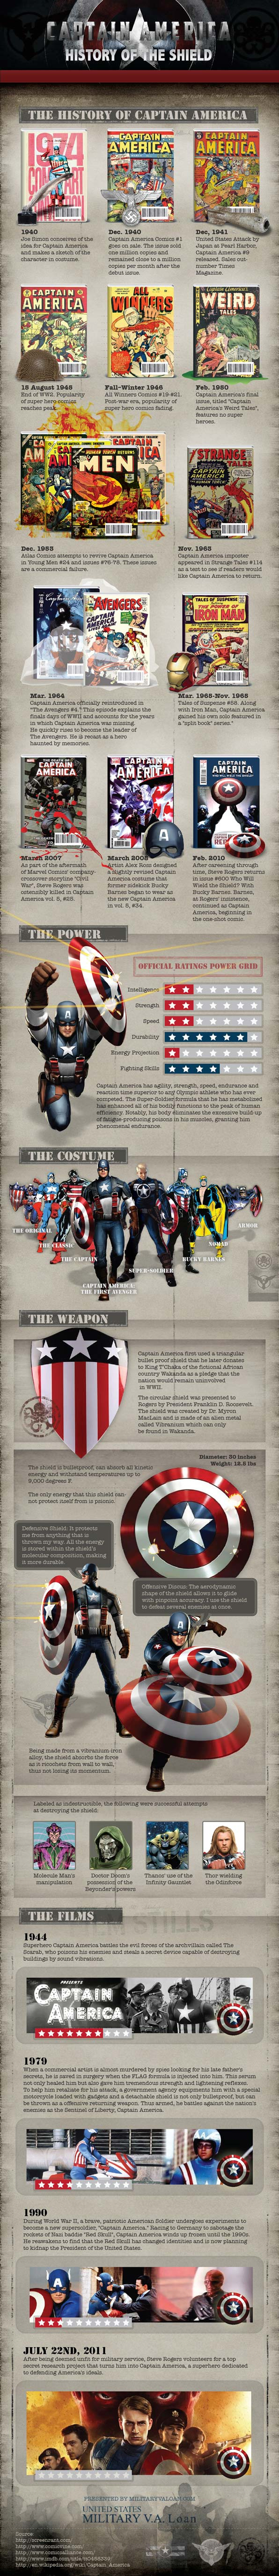 Captain America vs the Green Lantern: Who won the Infographic Battle?